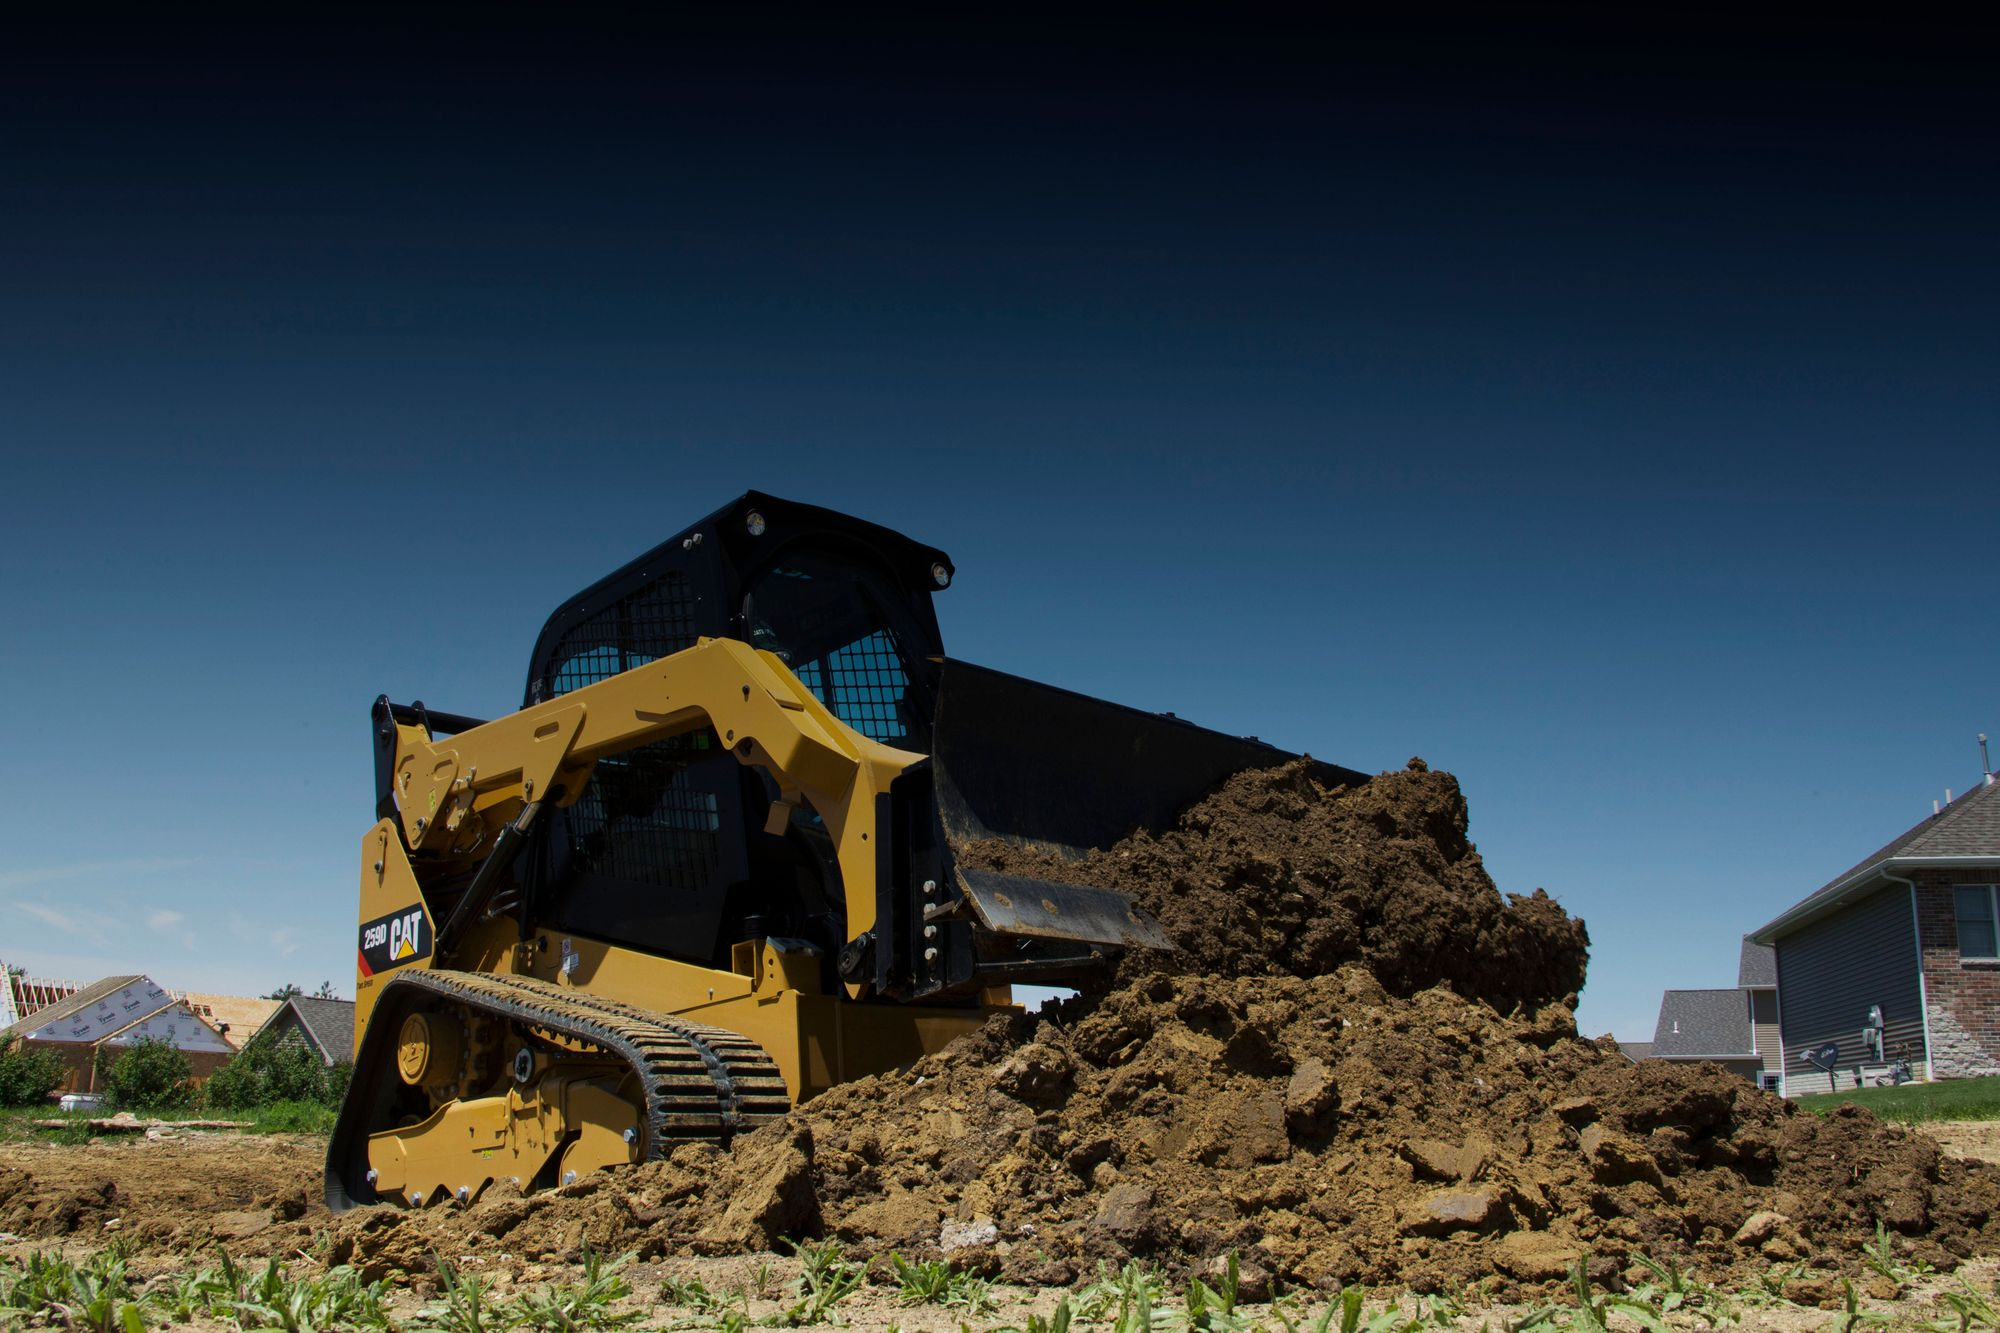 5 Considerations when Renting a Cat® Skid Steer